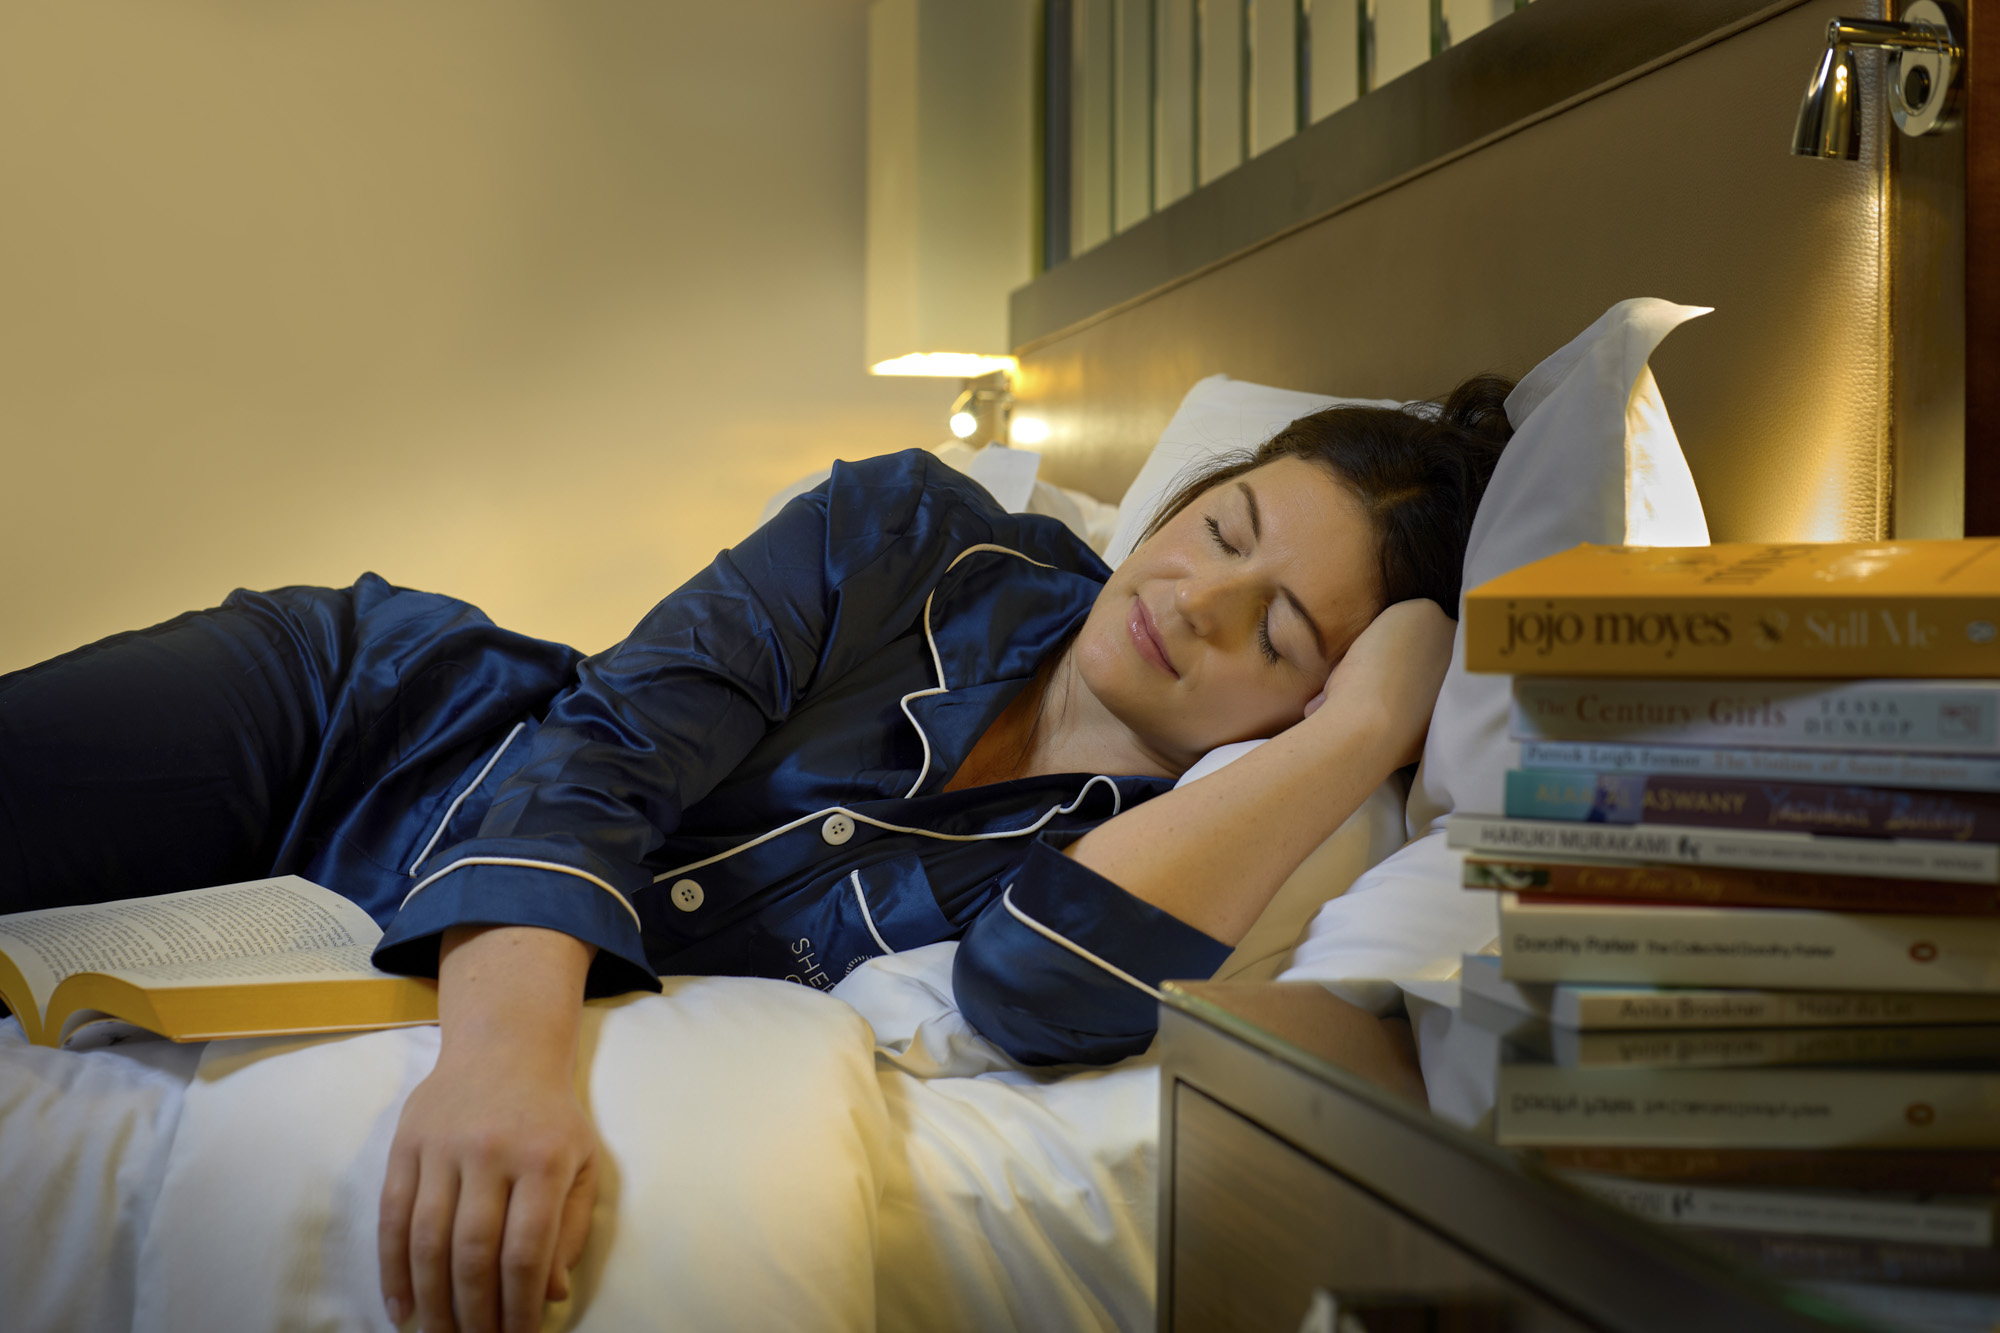 The books selected have been proven to help induce drowsiness